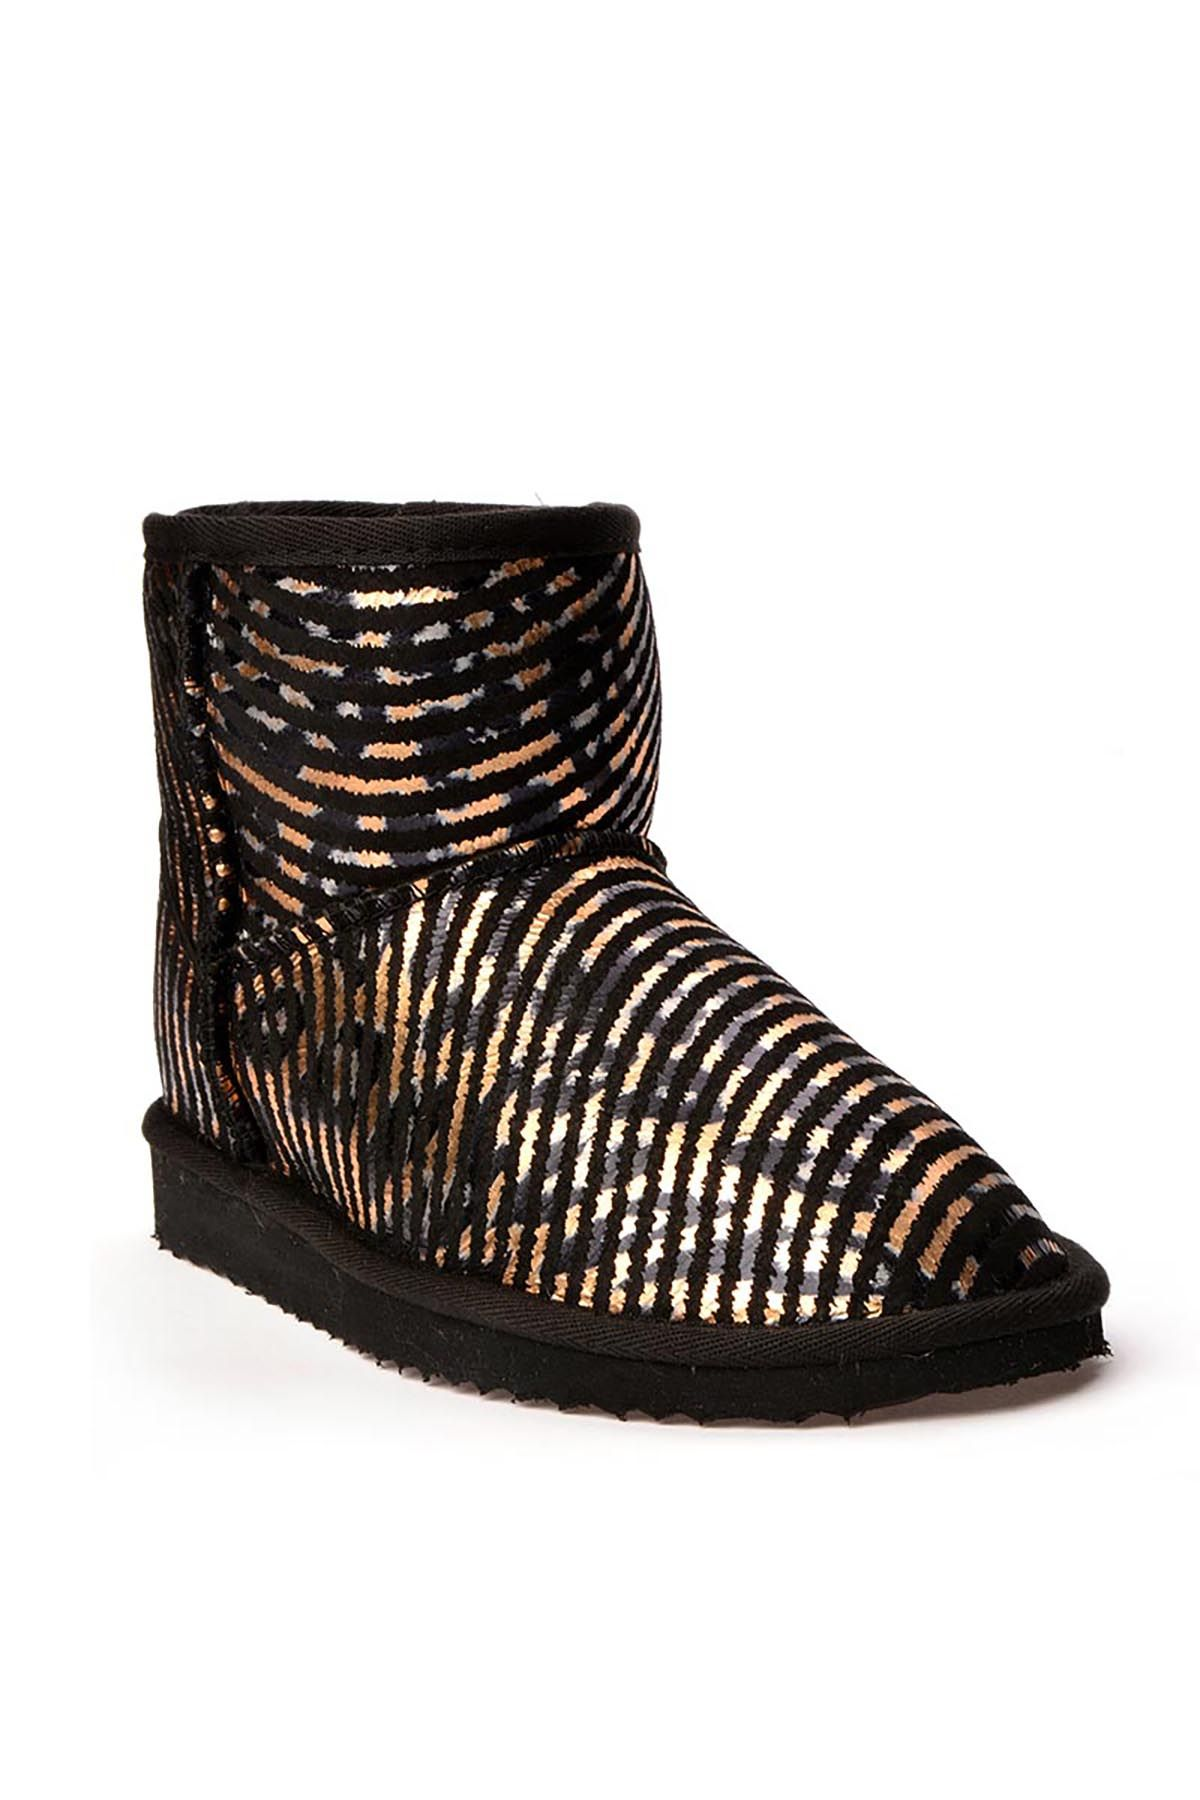 Cool Moon Women Uggs From Genuine Fur With Stripes Pattern Golden